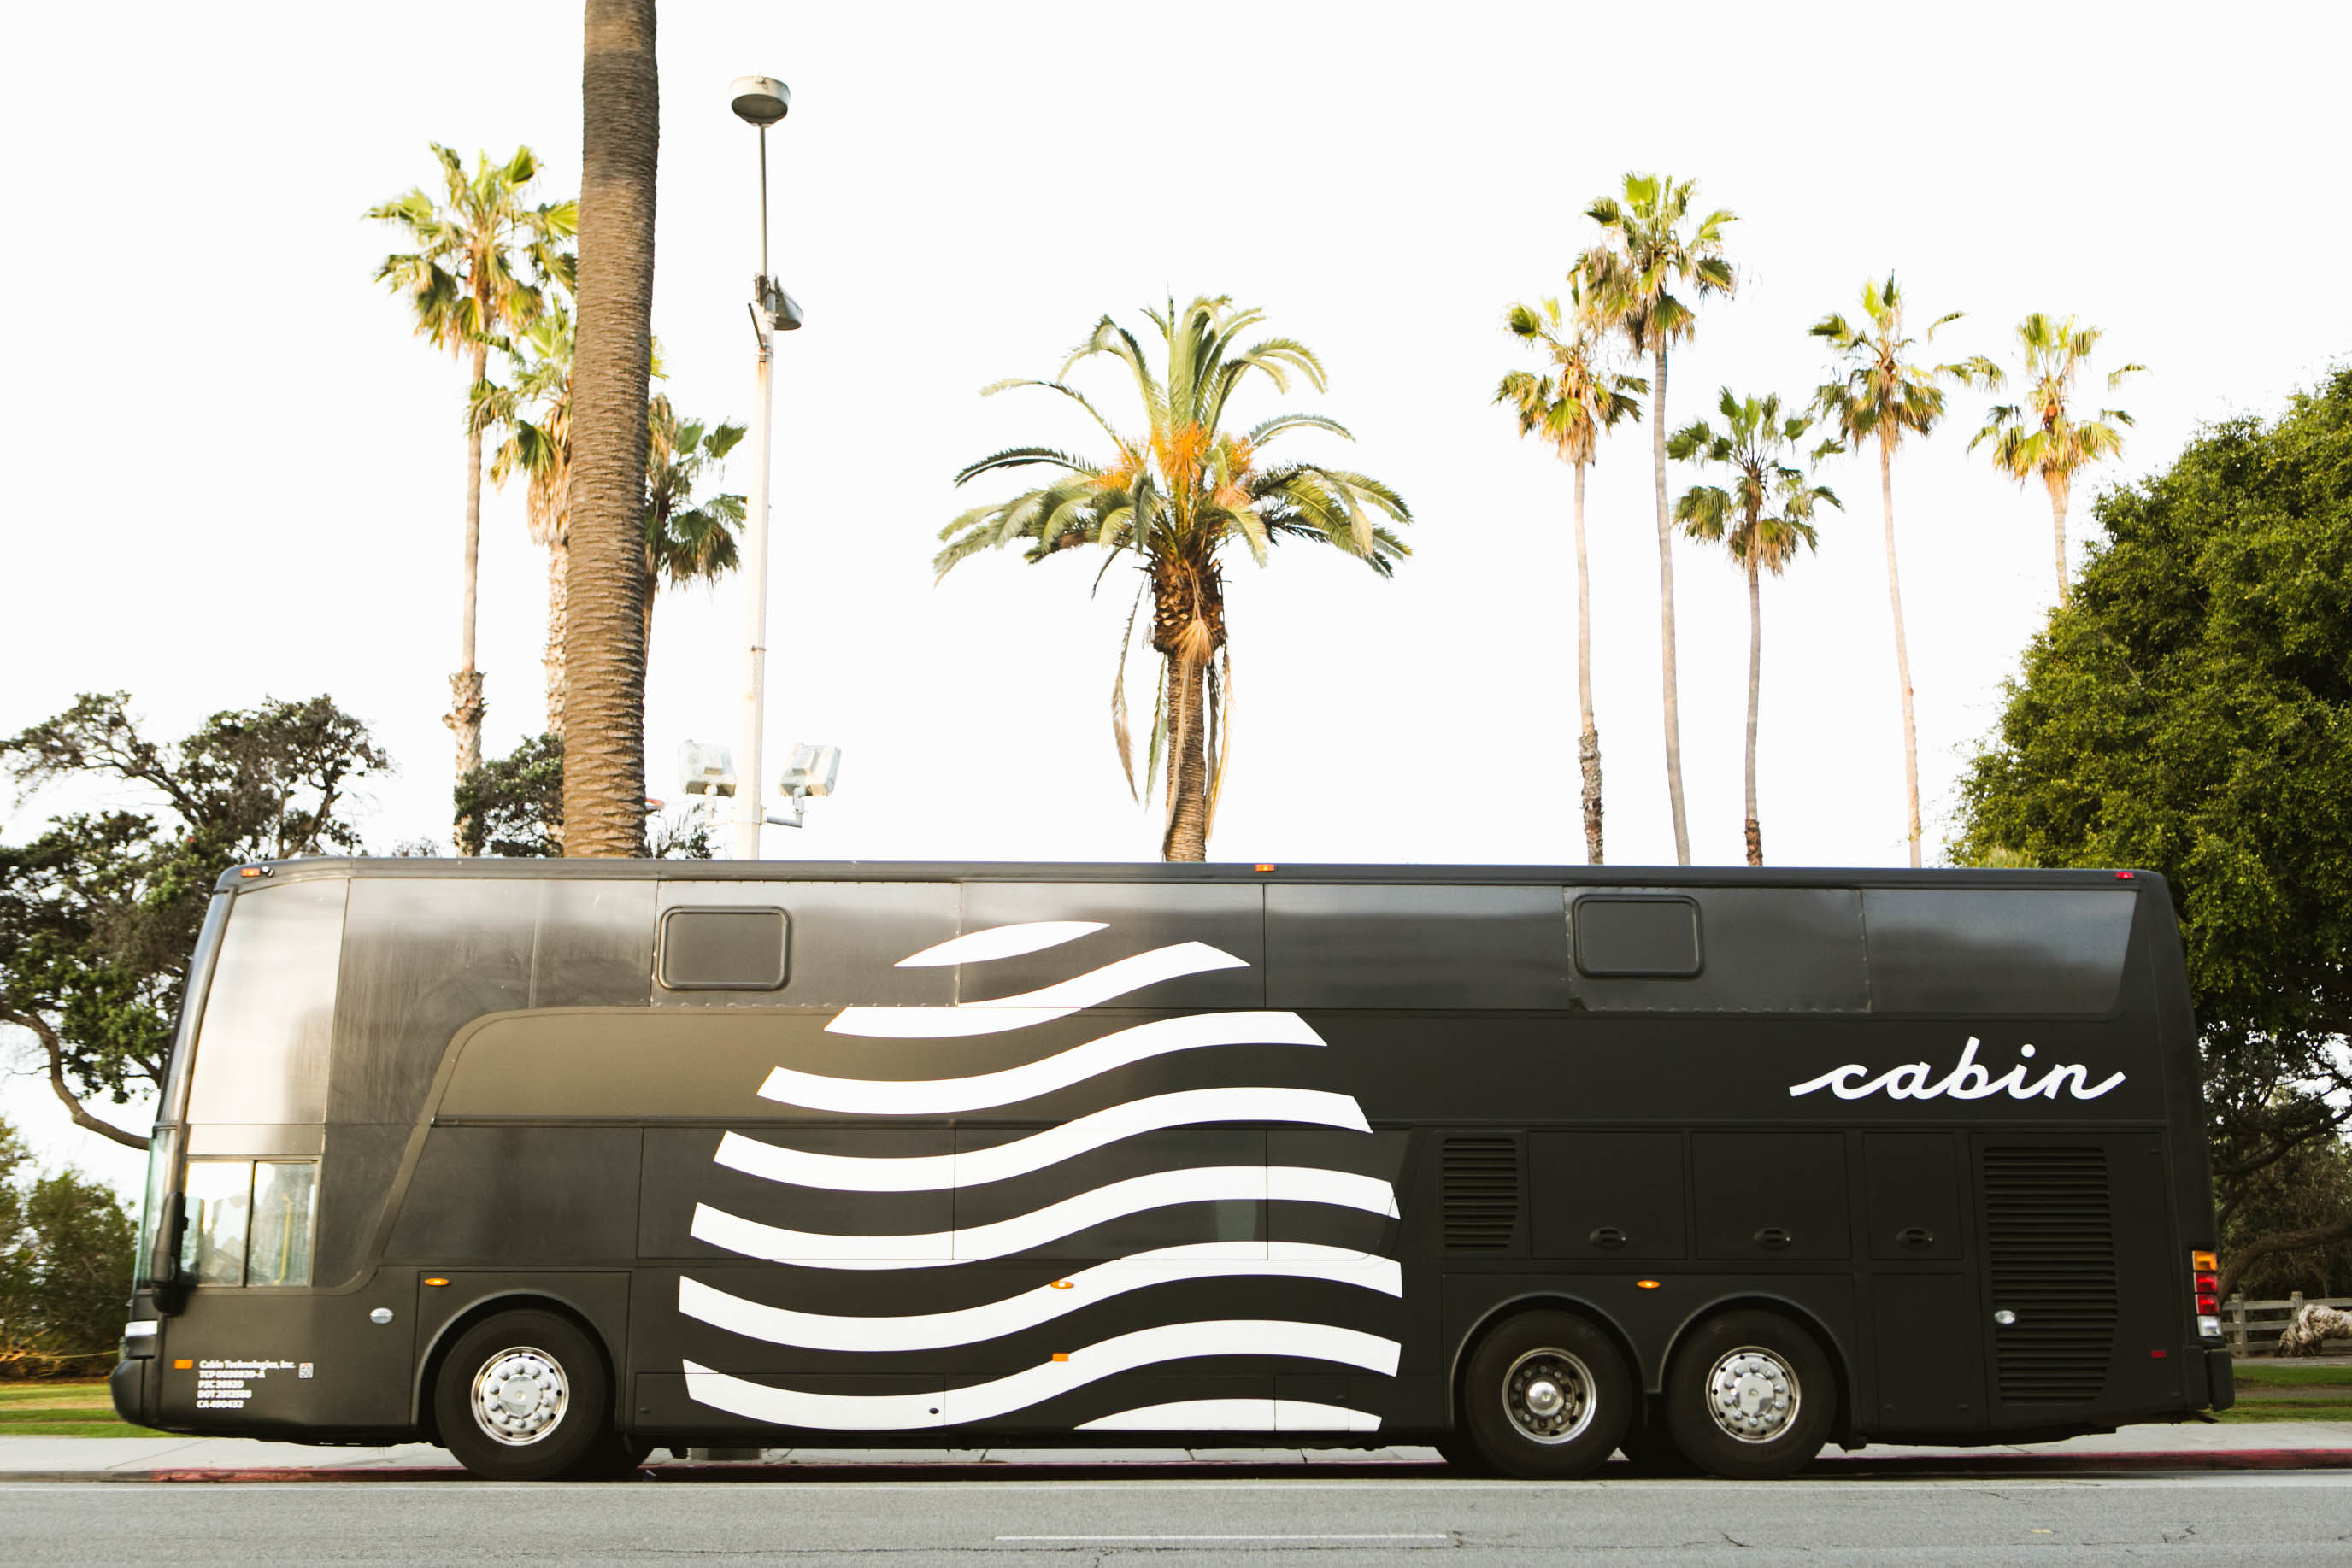 Cabin Luxury Bus From LA to SF